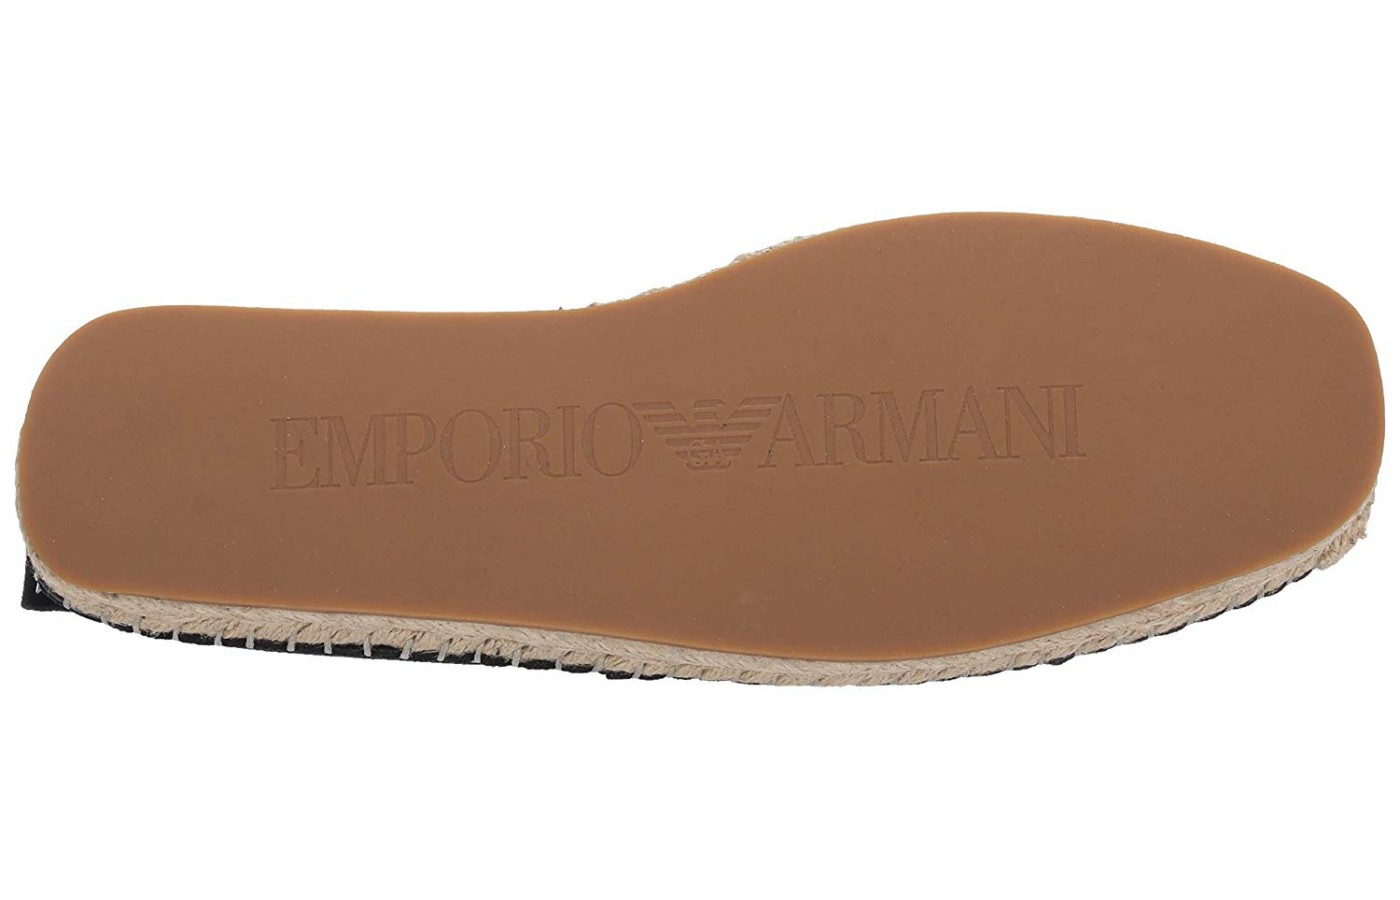 Emporio Armani Suede Espadrille Bottom View